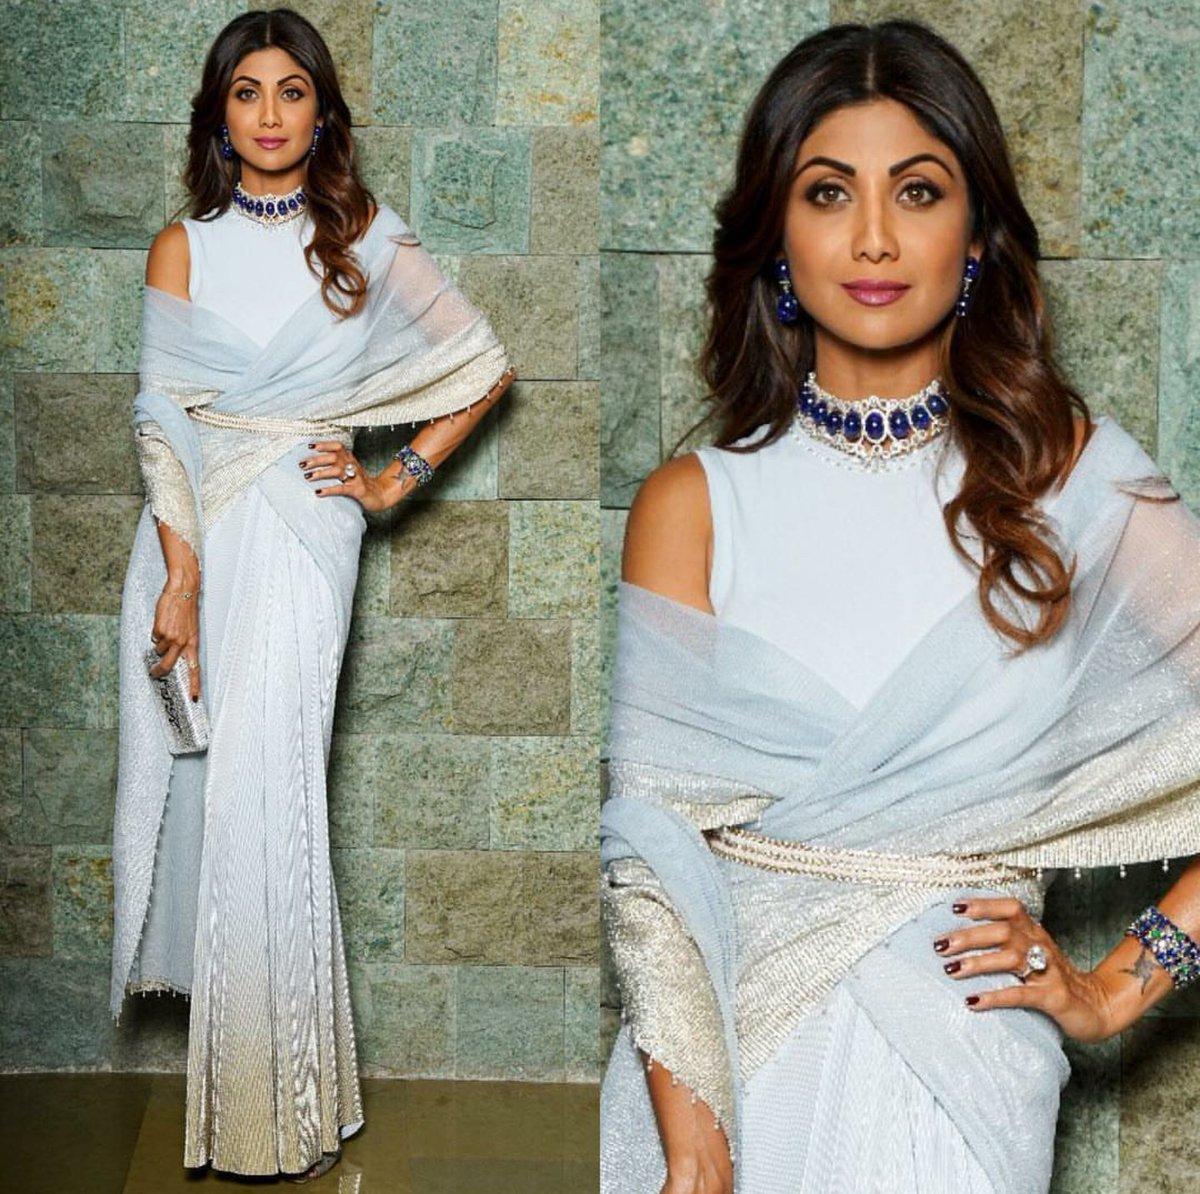 Saree Com On Twitter We Re In Awe Of Shilpa Shetty S Offbeat Saree Collection The Diva Was Once Again Spotted In An Irresistibly Stylish Drape Shilpashetty Celebrity Fashion Shilpashettykundra Saree Https T Co Yp8jasxkyx